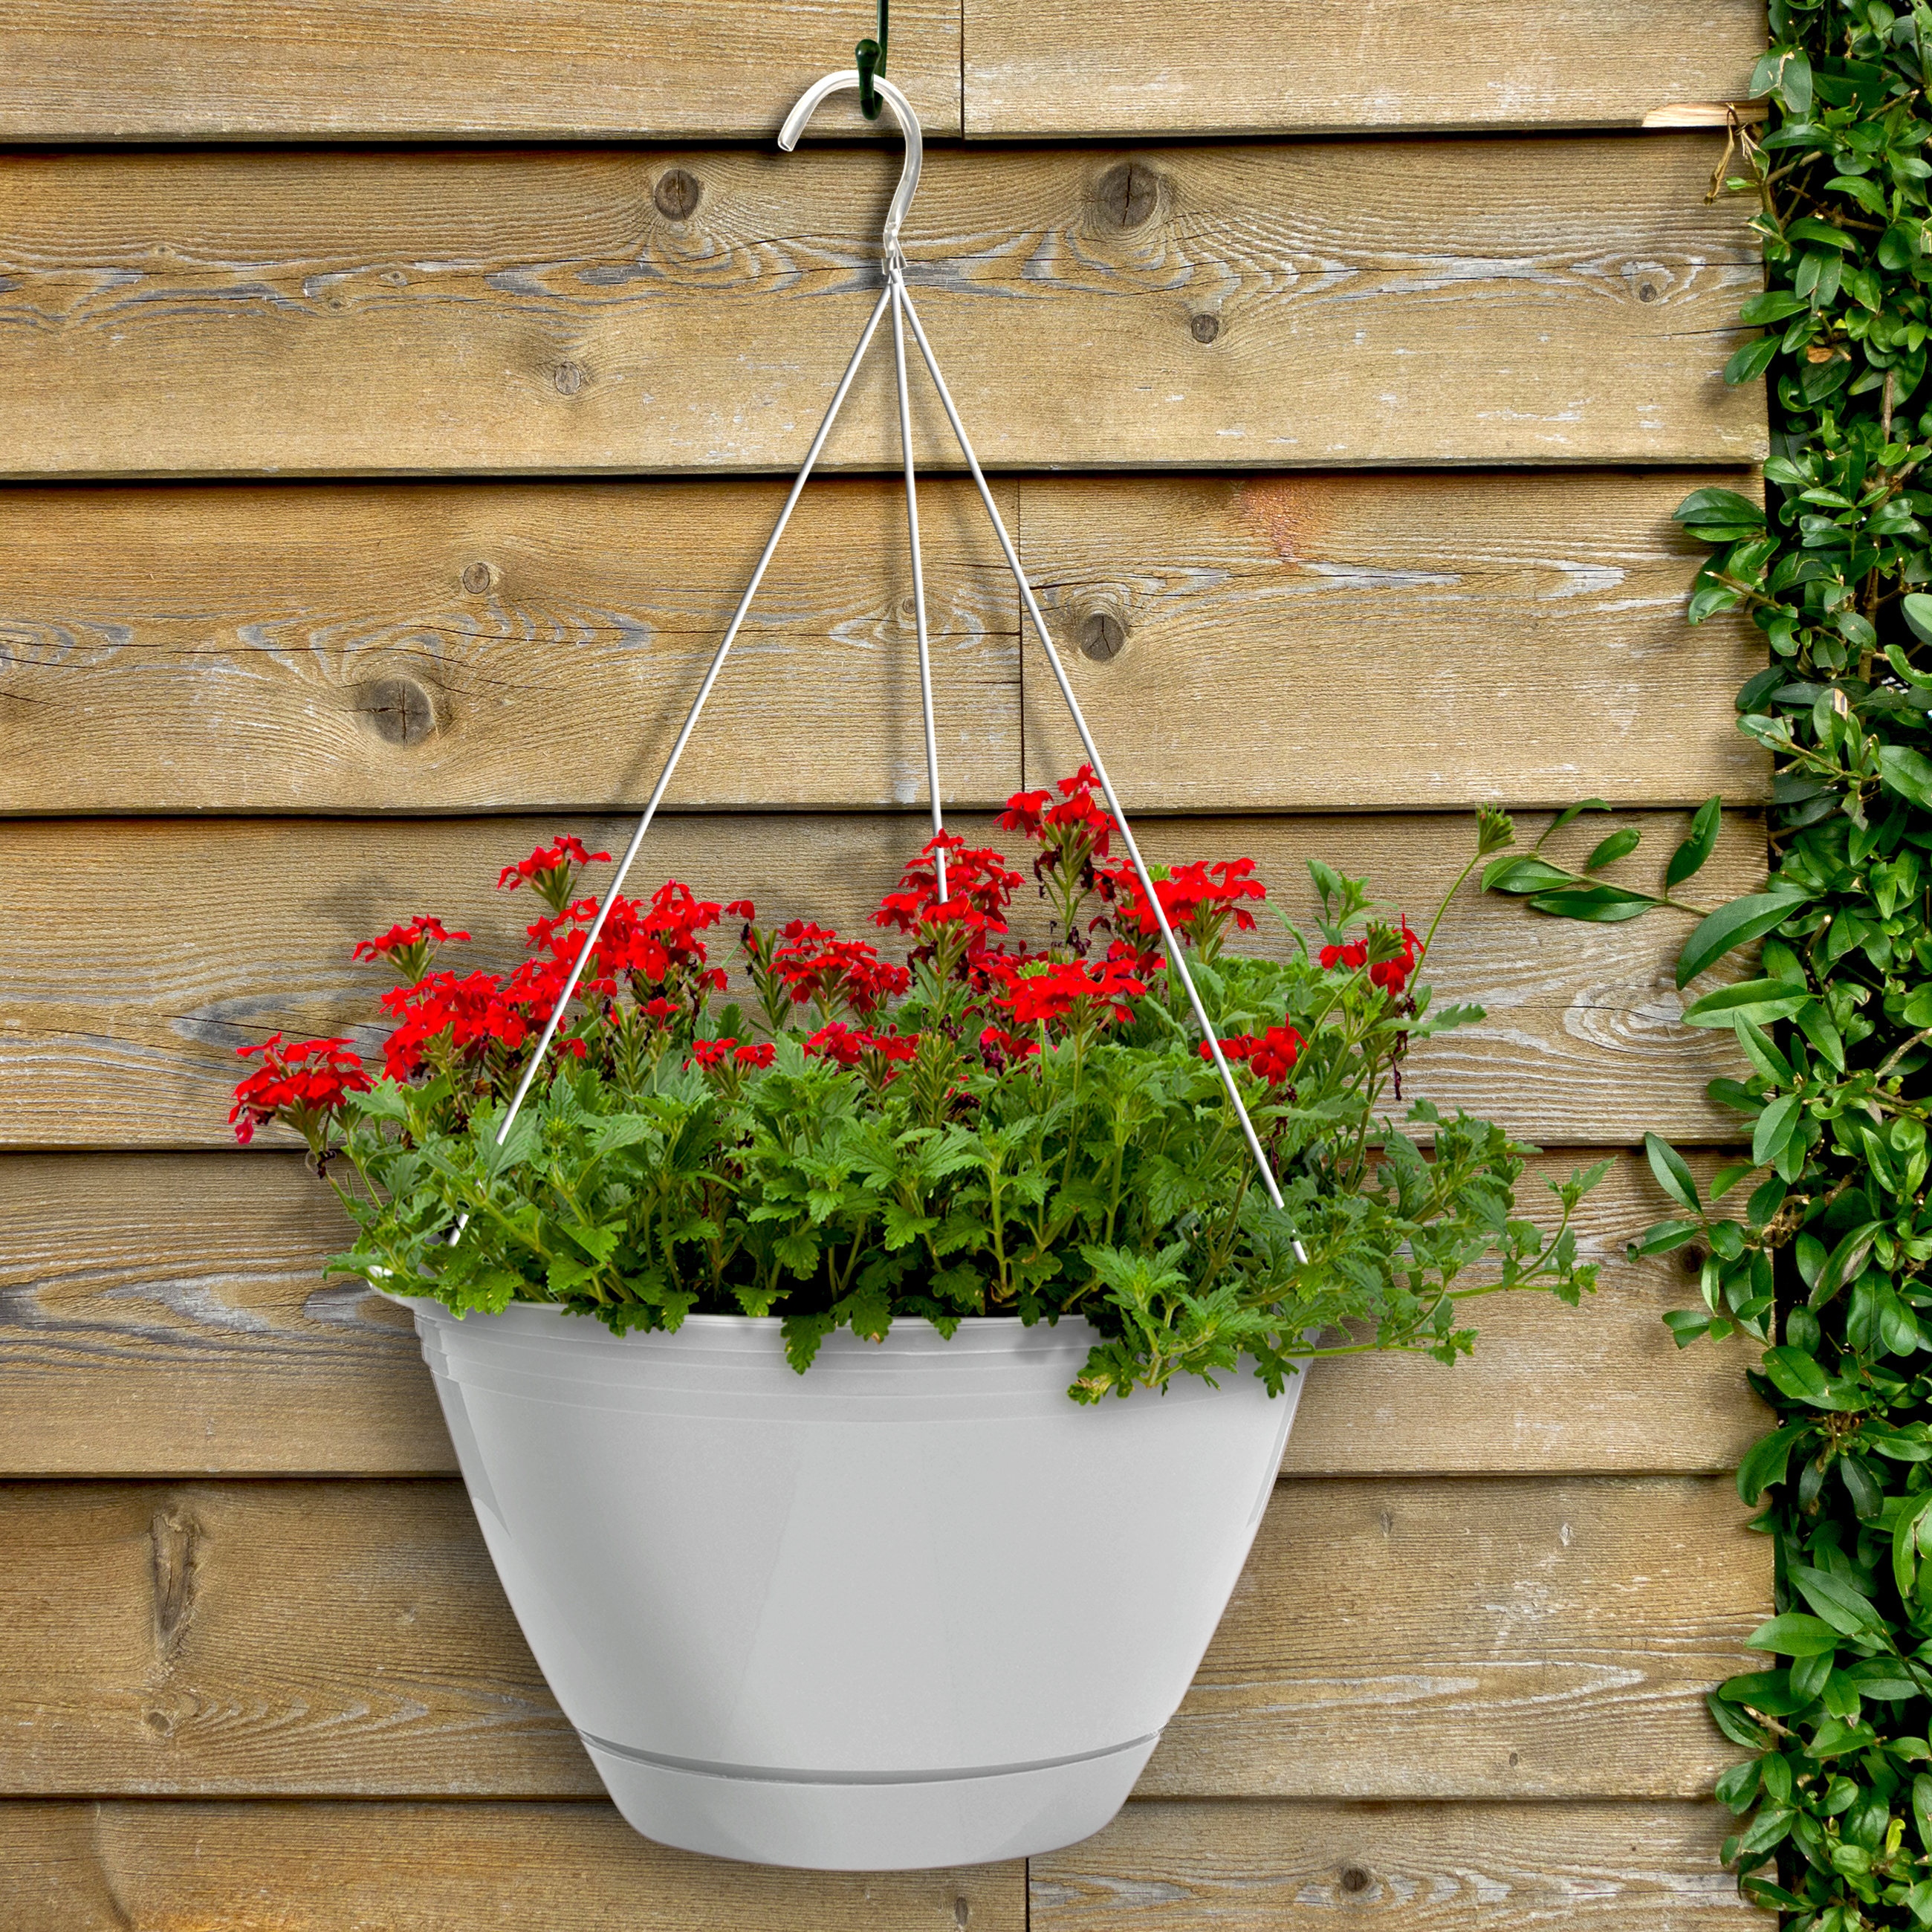 Dynamic Design 10 Promotional Hanging Basket Fern Southern Patio